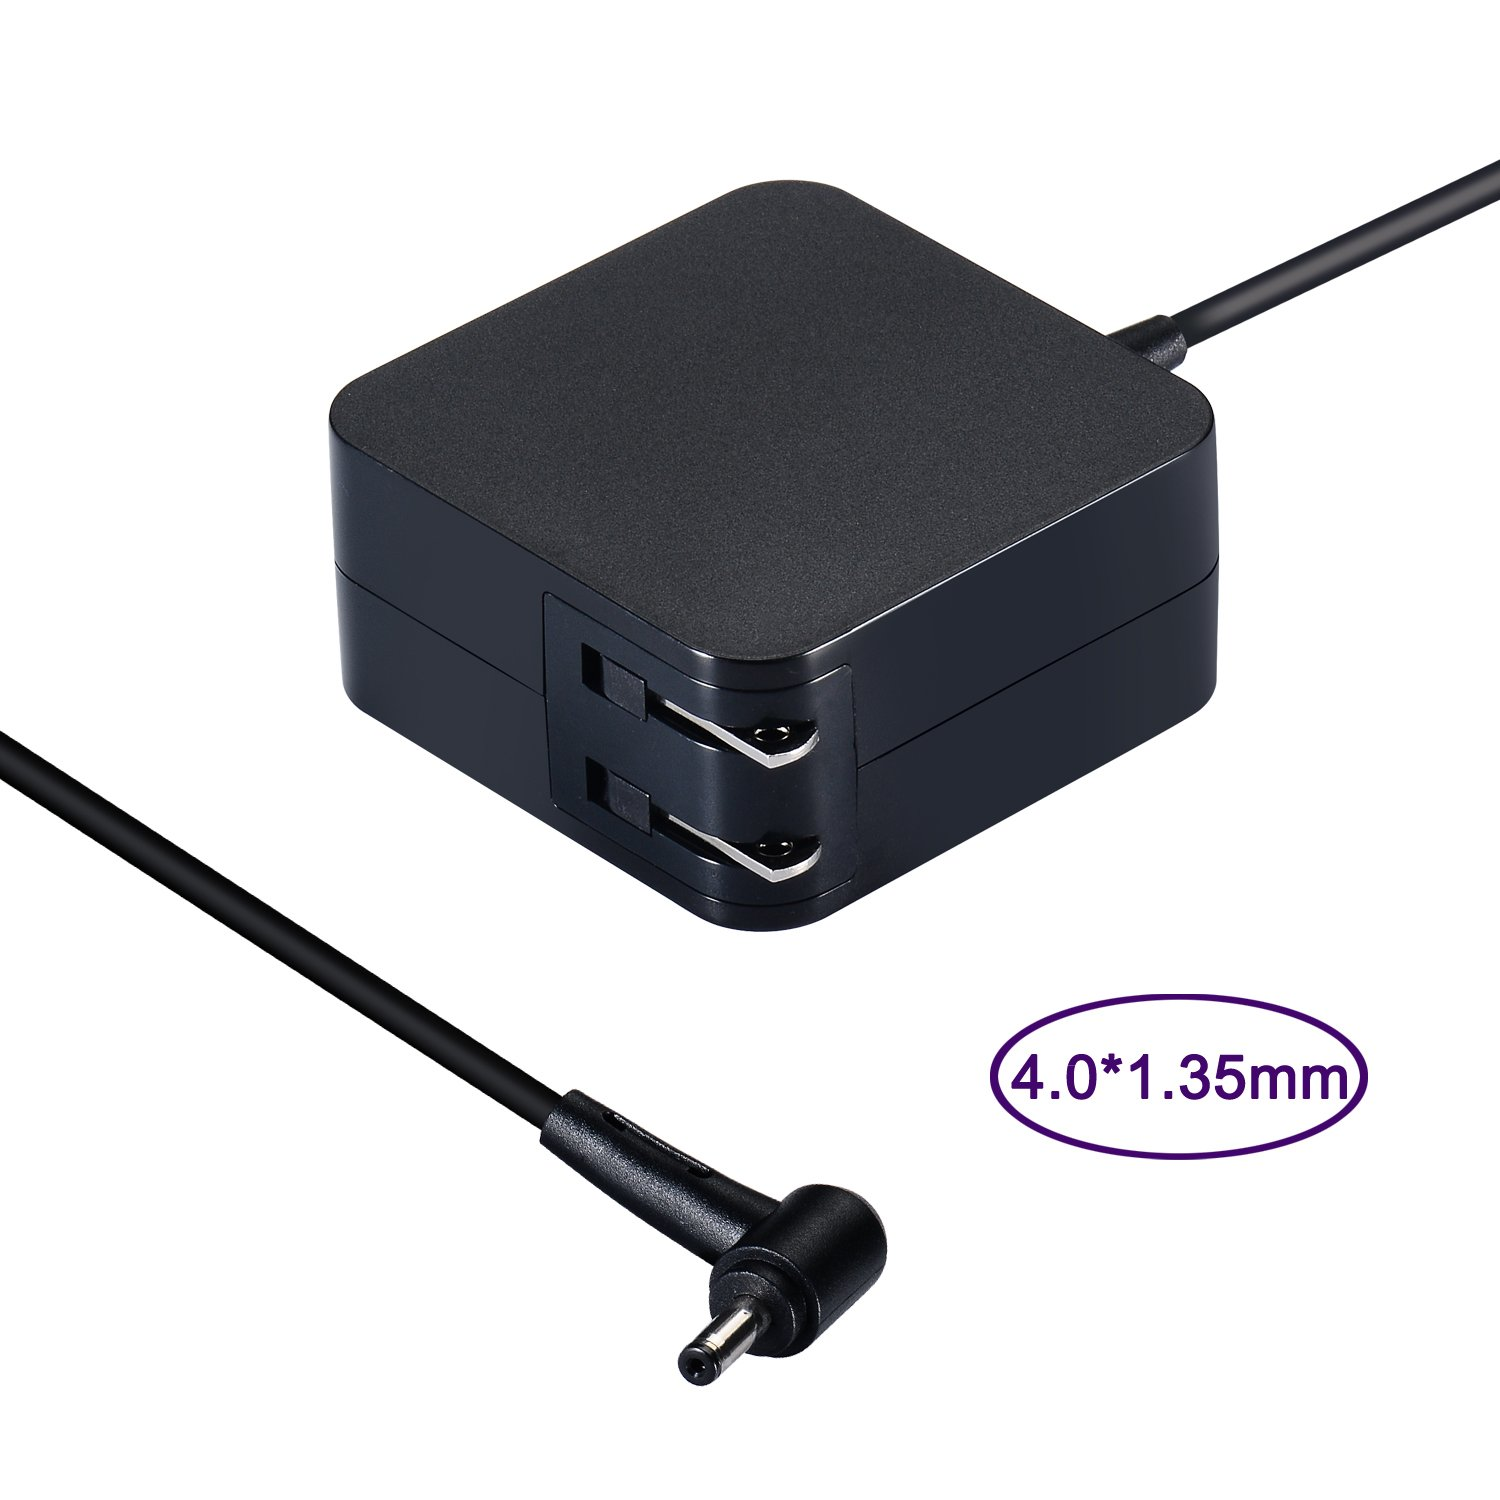 Laptop Power Supply 45W Notebook Charger for Asus UX330 UX330U UX360 UX360C UX305 UX305C X540 X541 F553 F553M F556 F556U F302 K556 K556U Taichi 21 31 ASUS AC Adapter (45W 19V 2,37A & 33W 19V 1,75A) by Purpleleaf (Image #2)